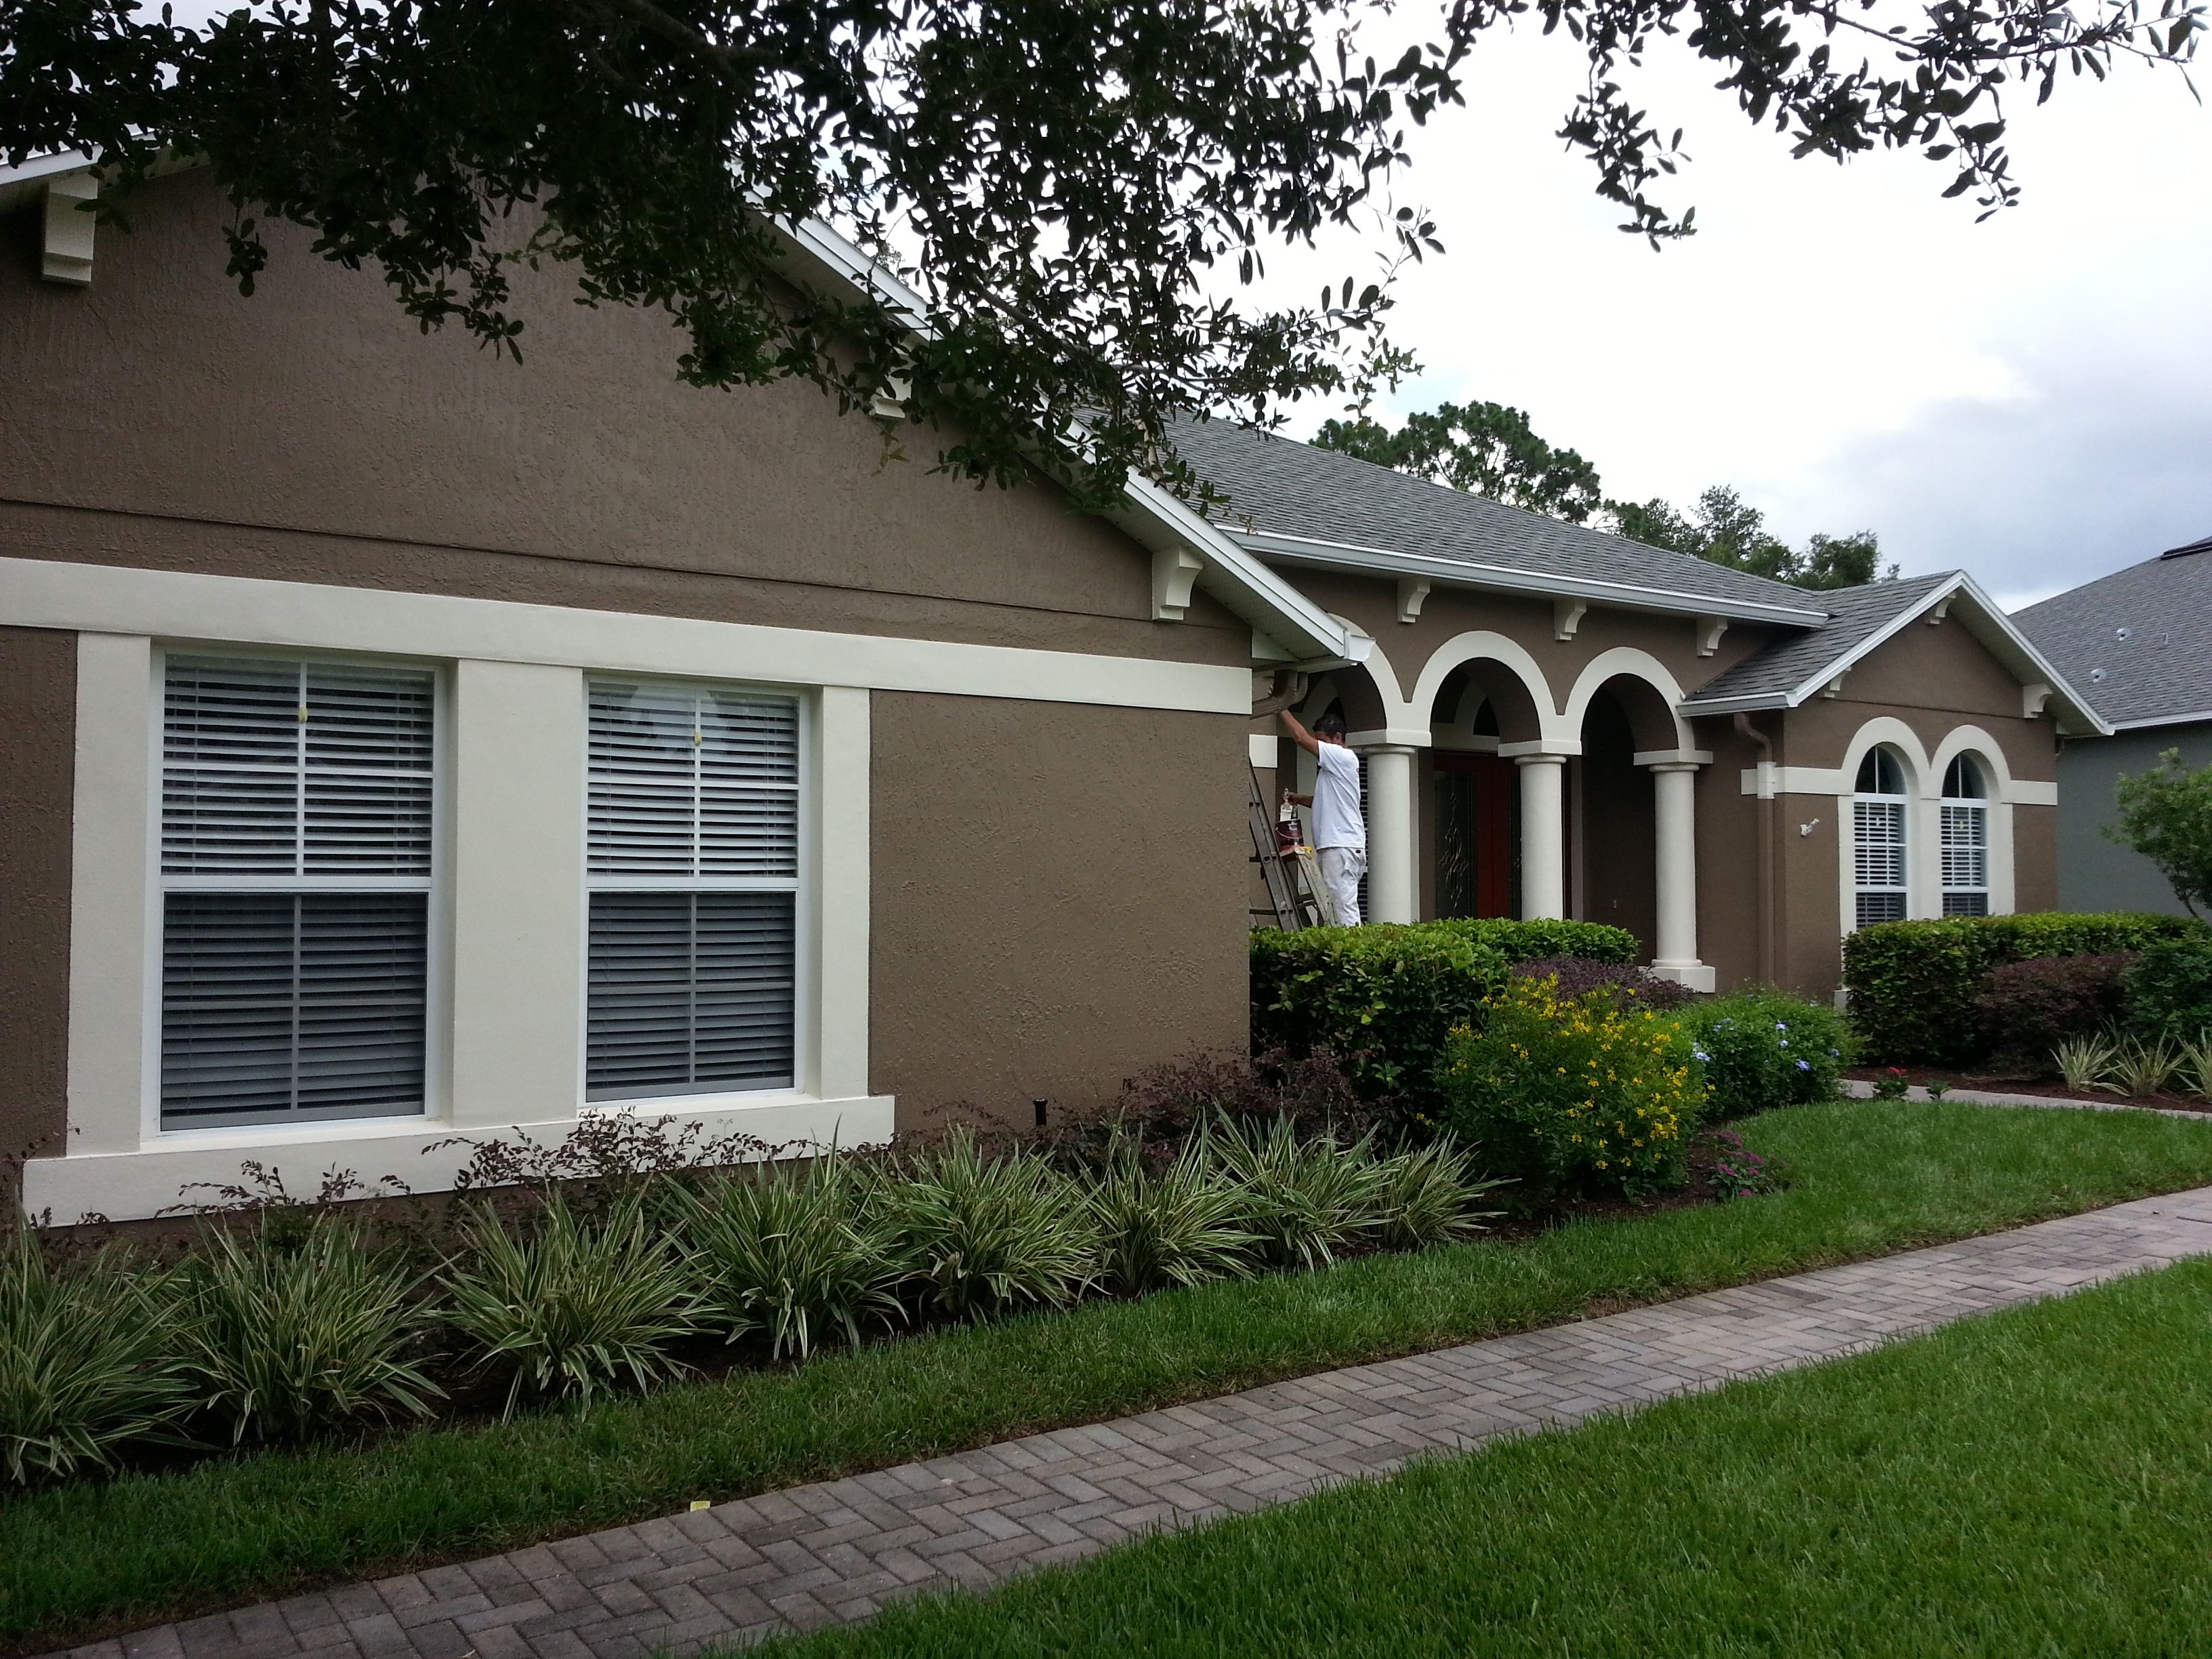 Exterior repaint using Benjamin Moore Aura in Davenport Tan HC-76 ...